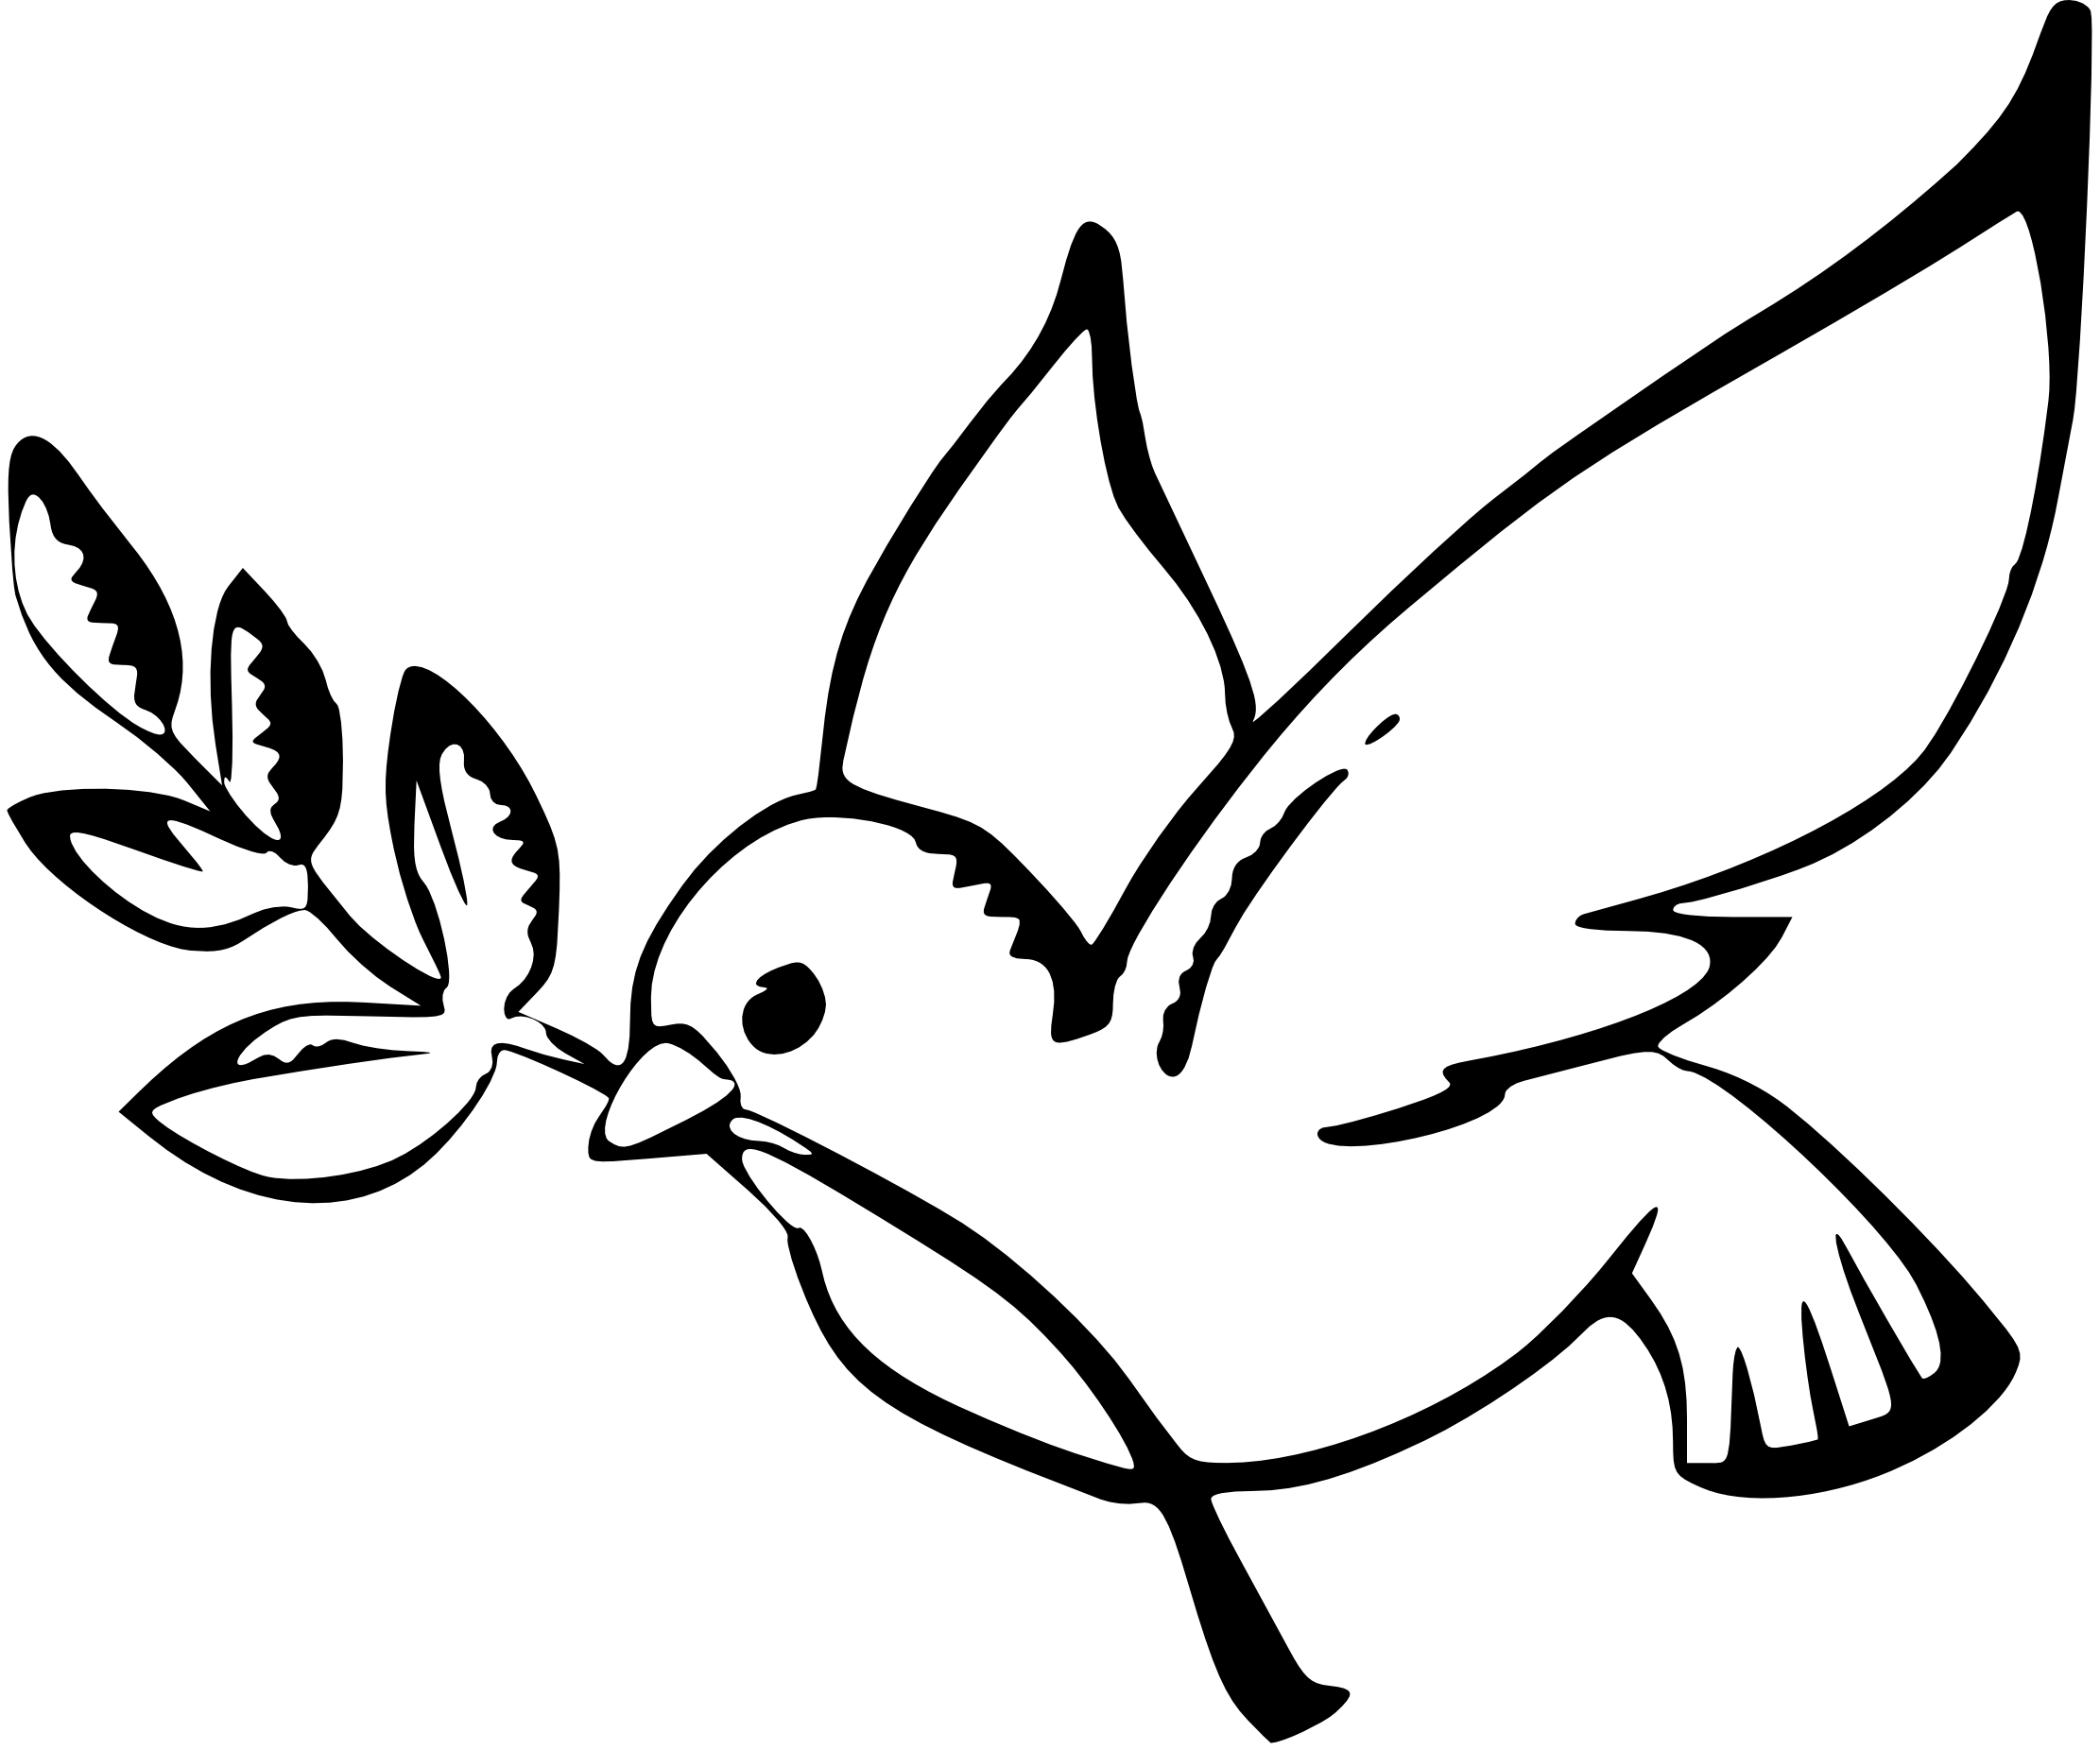 2256 views  ART FOR FUN  Pinterest  Dove drawing and Stenciling